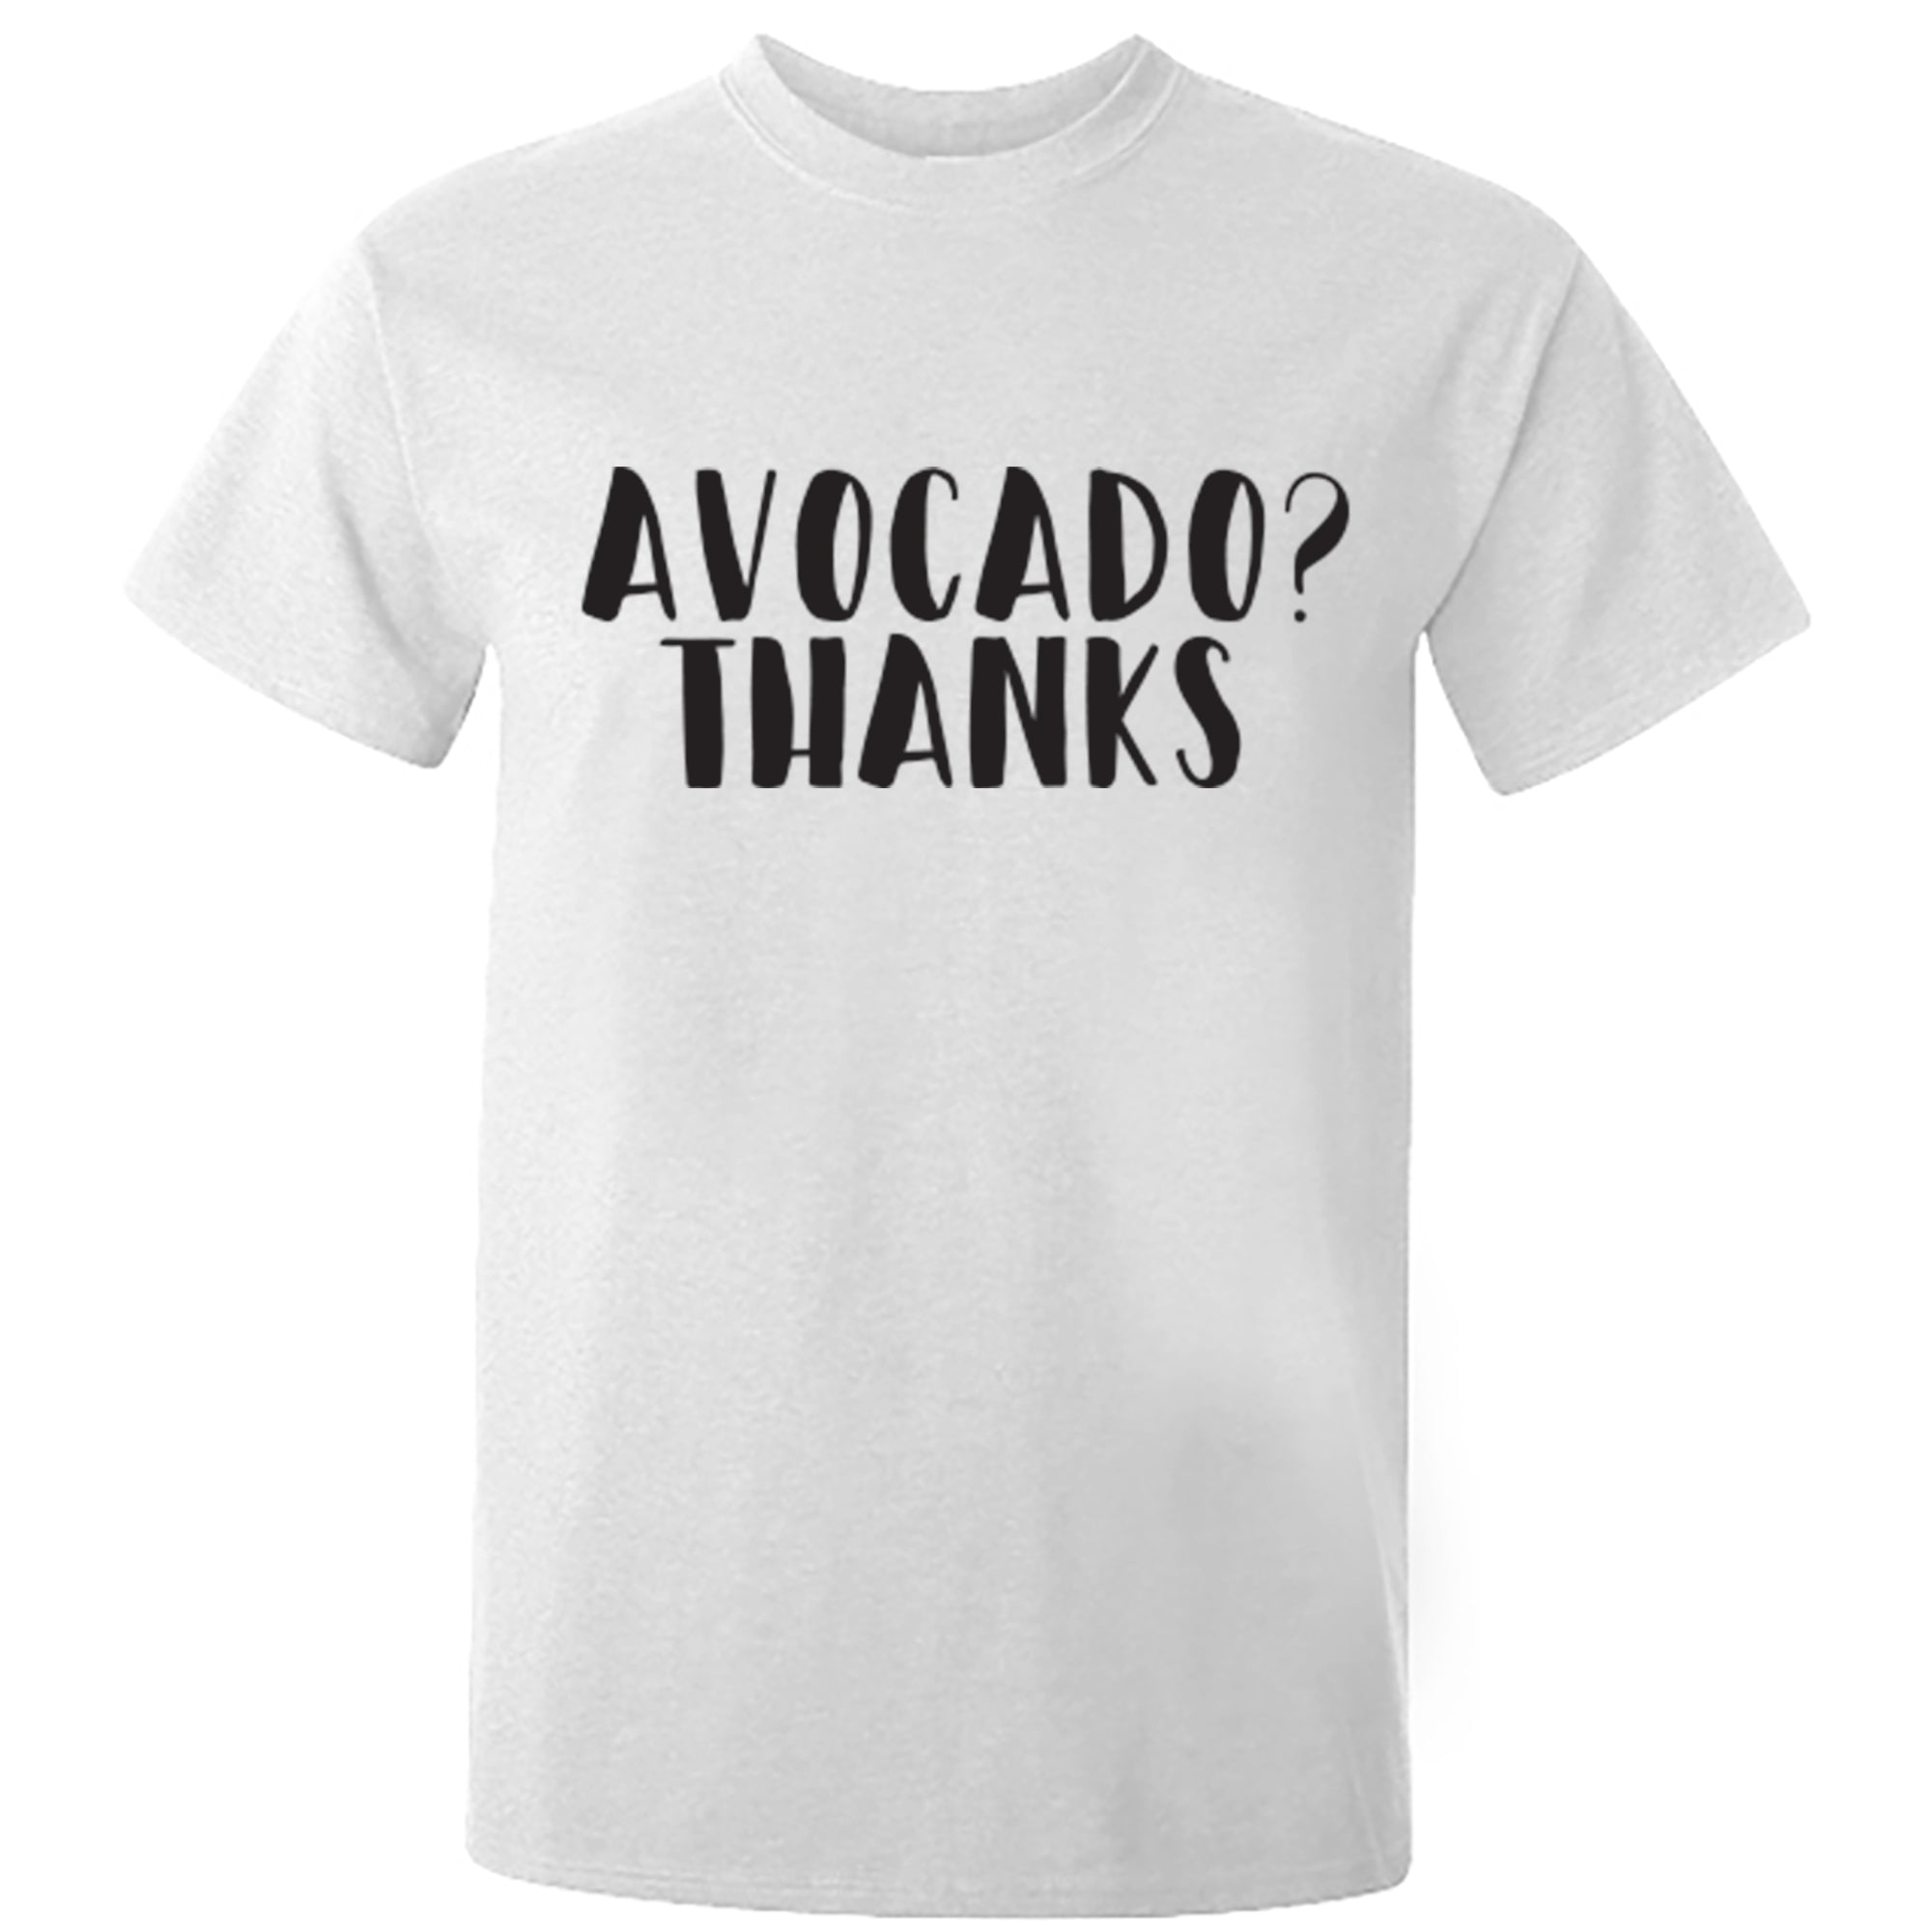 Avocado? Thanks Vine Unisex Fit T-Shirt S0245 - Illustrated Identity Ltd.